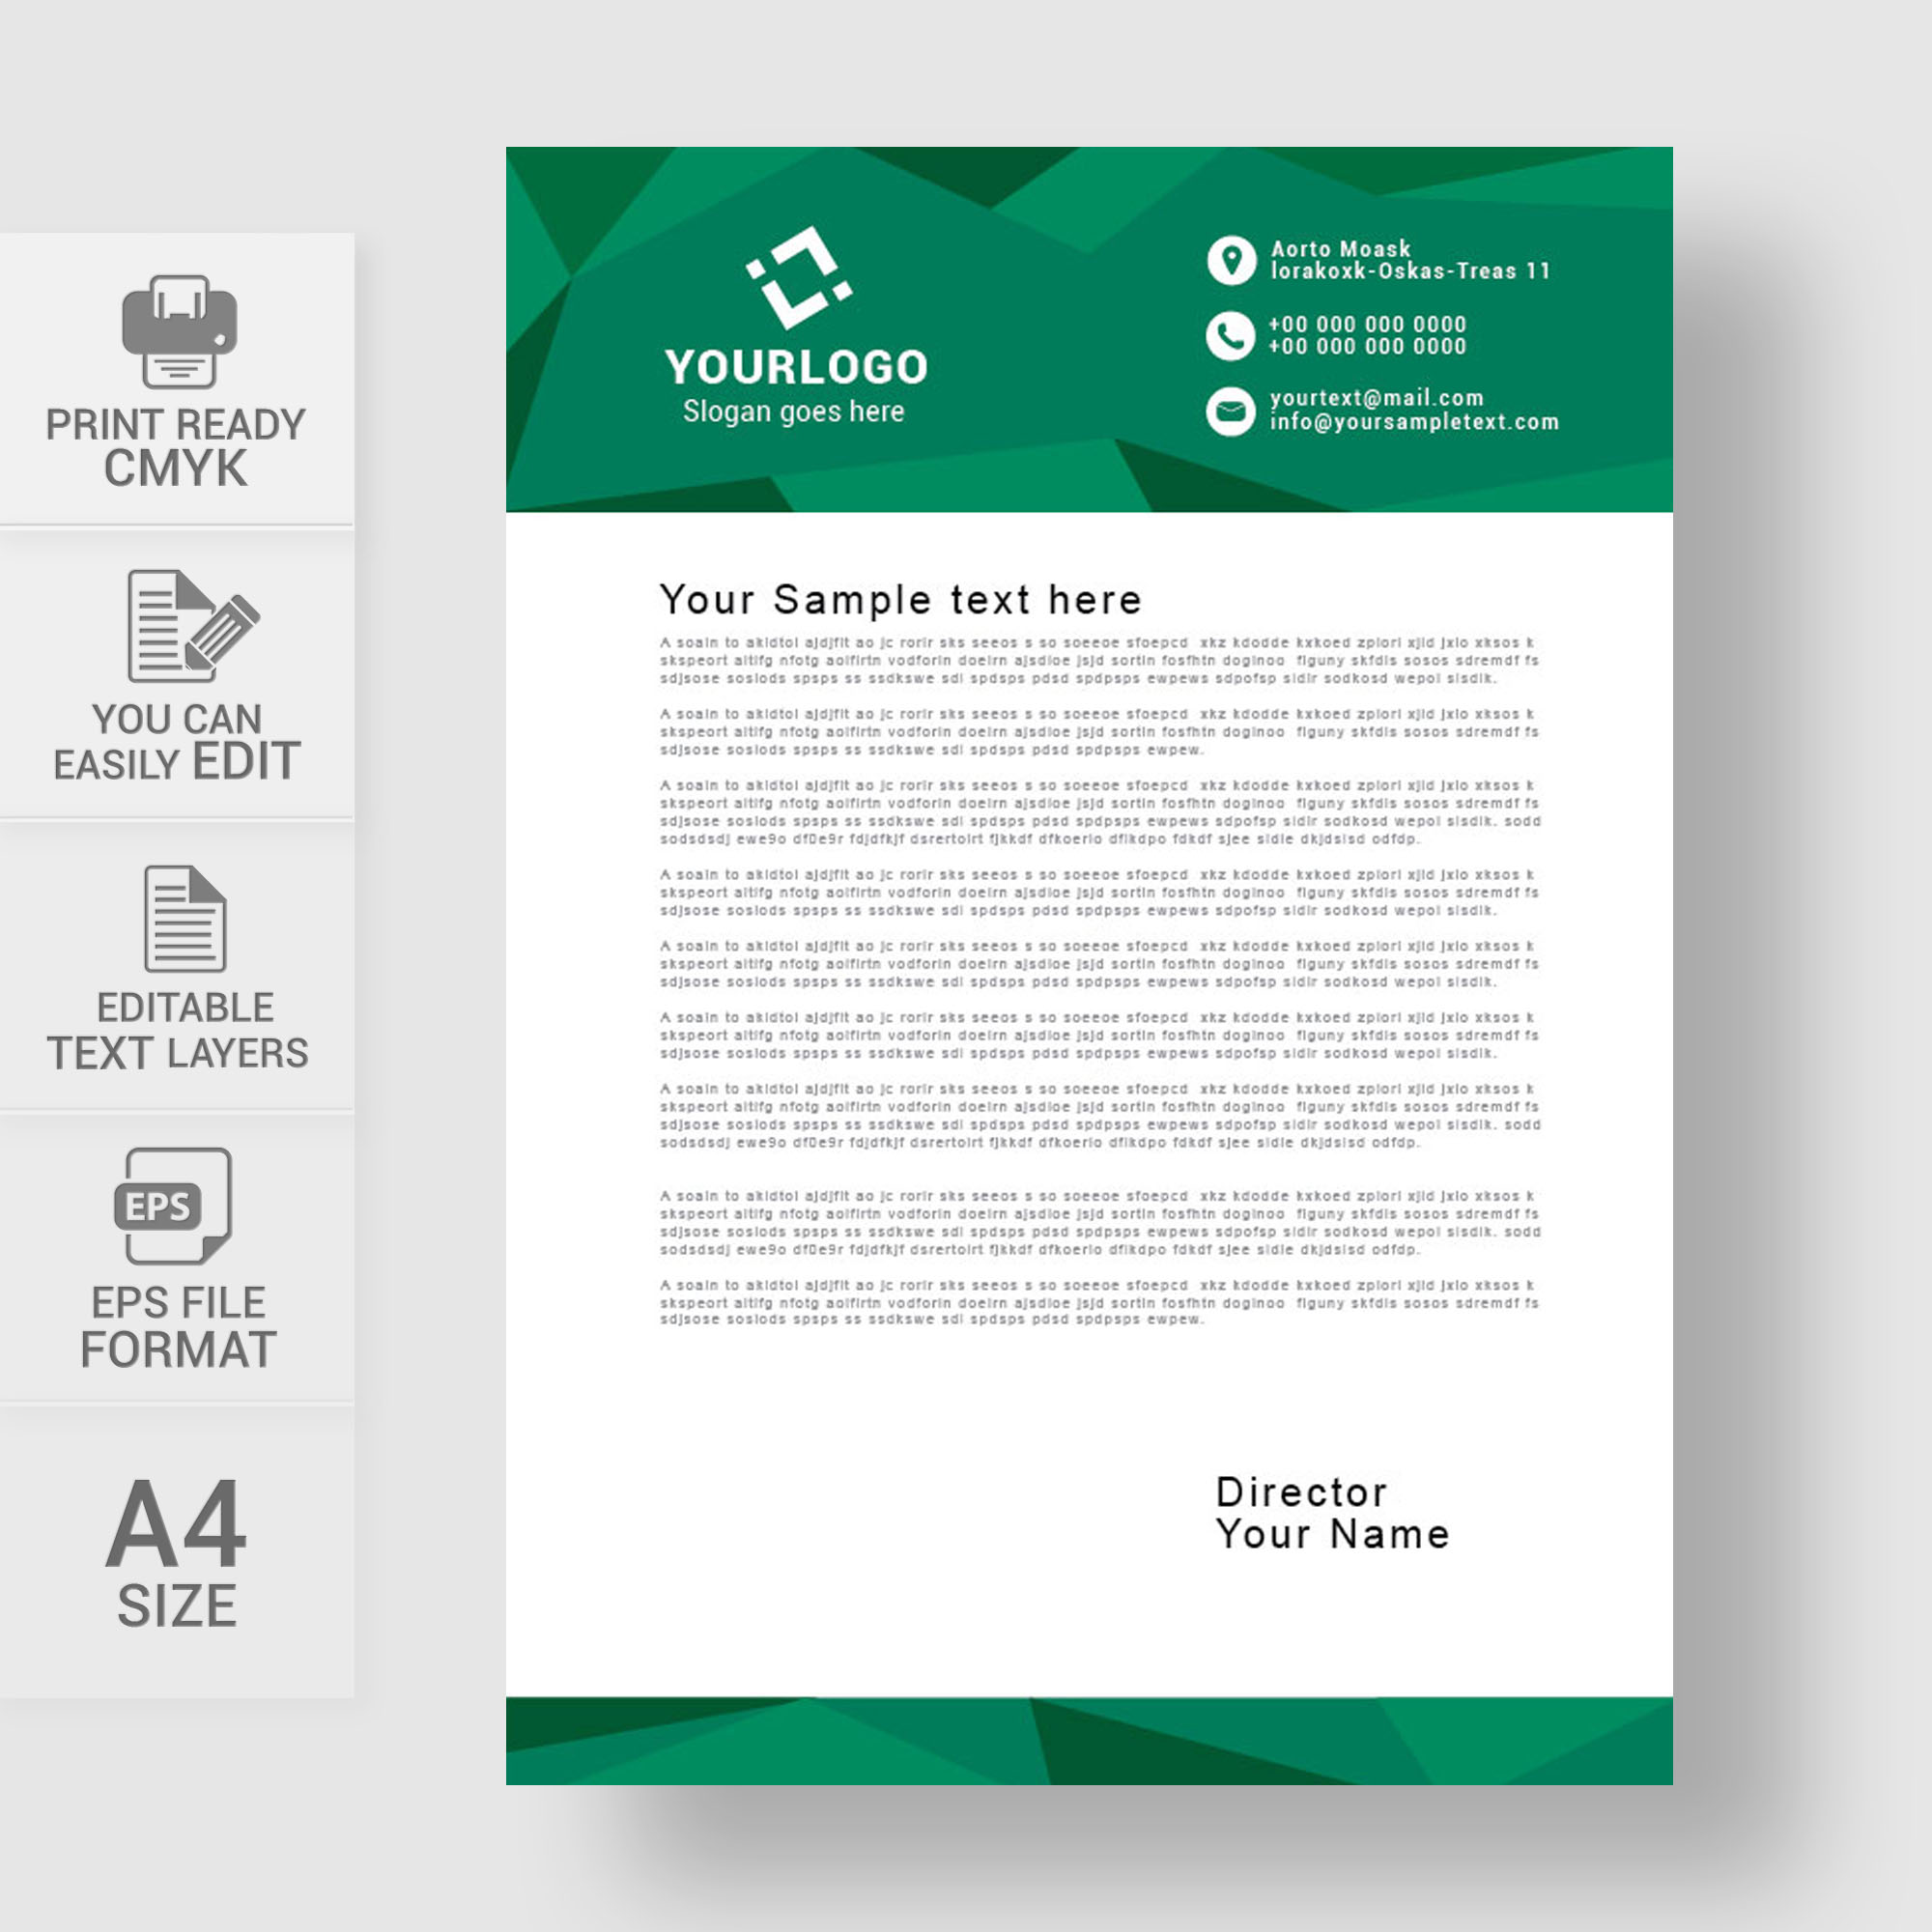 Abstract corporate green letterhead template free download wisxi letterheads letterhead design letterhead template print template vector abstract business spiritdancerdesigns Choice Image